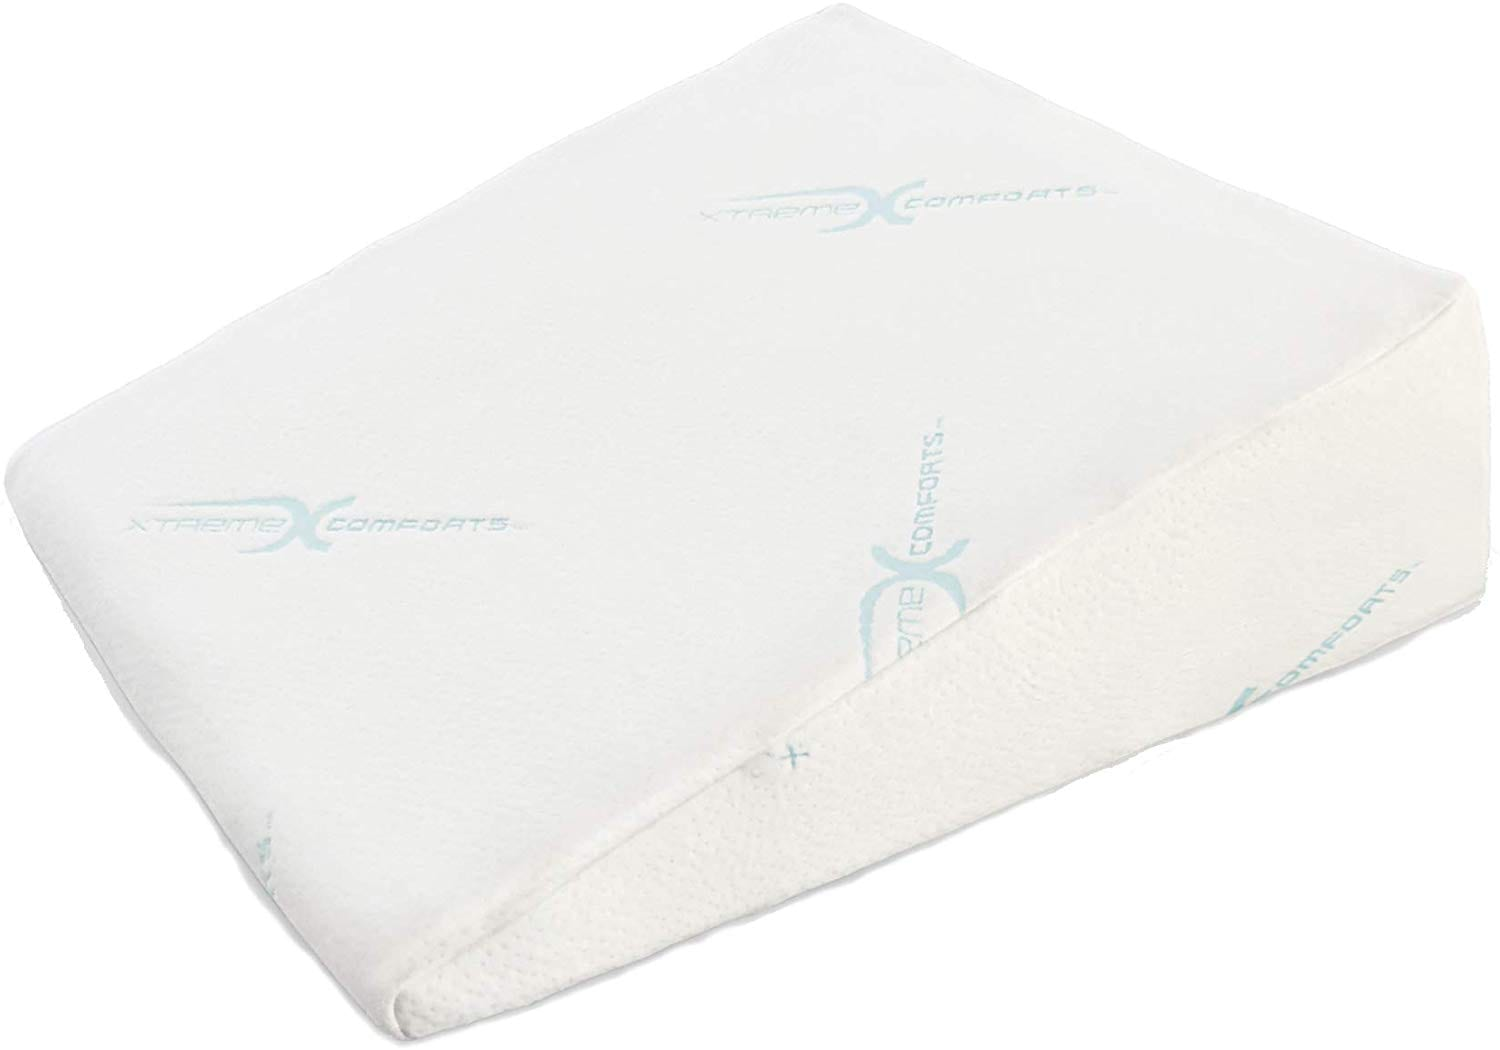 Xtreme Comforts best acid reflux pillow review by www.dailysleep.org